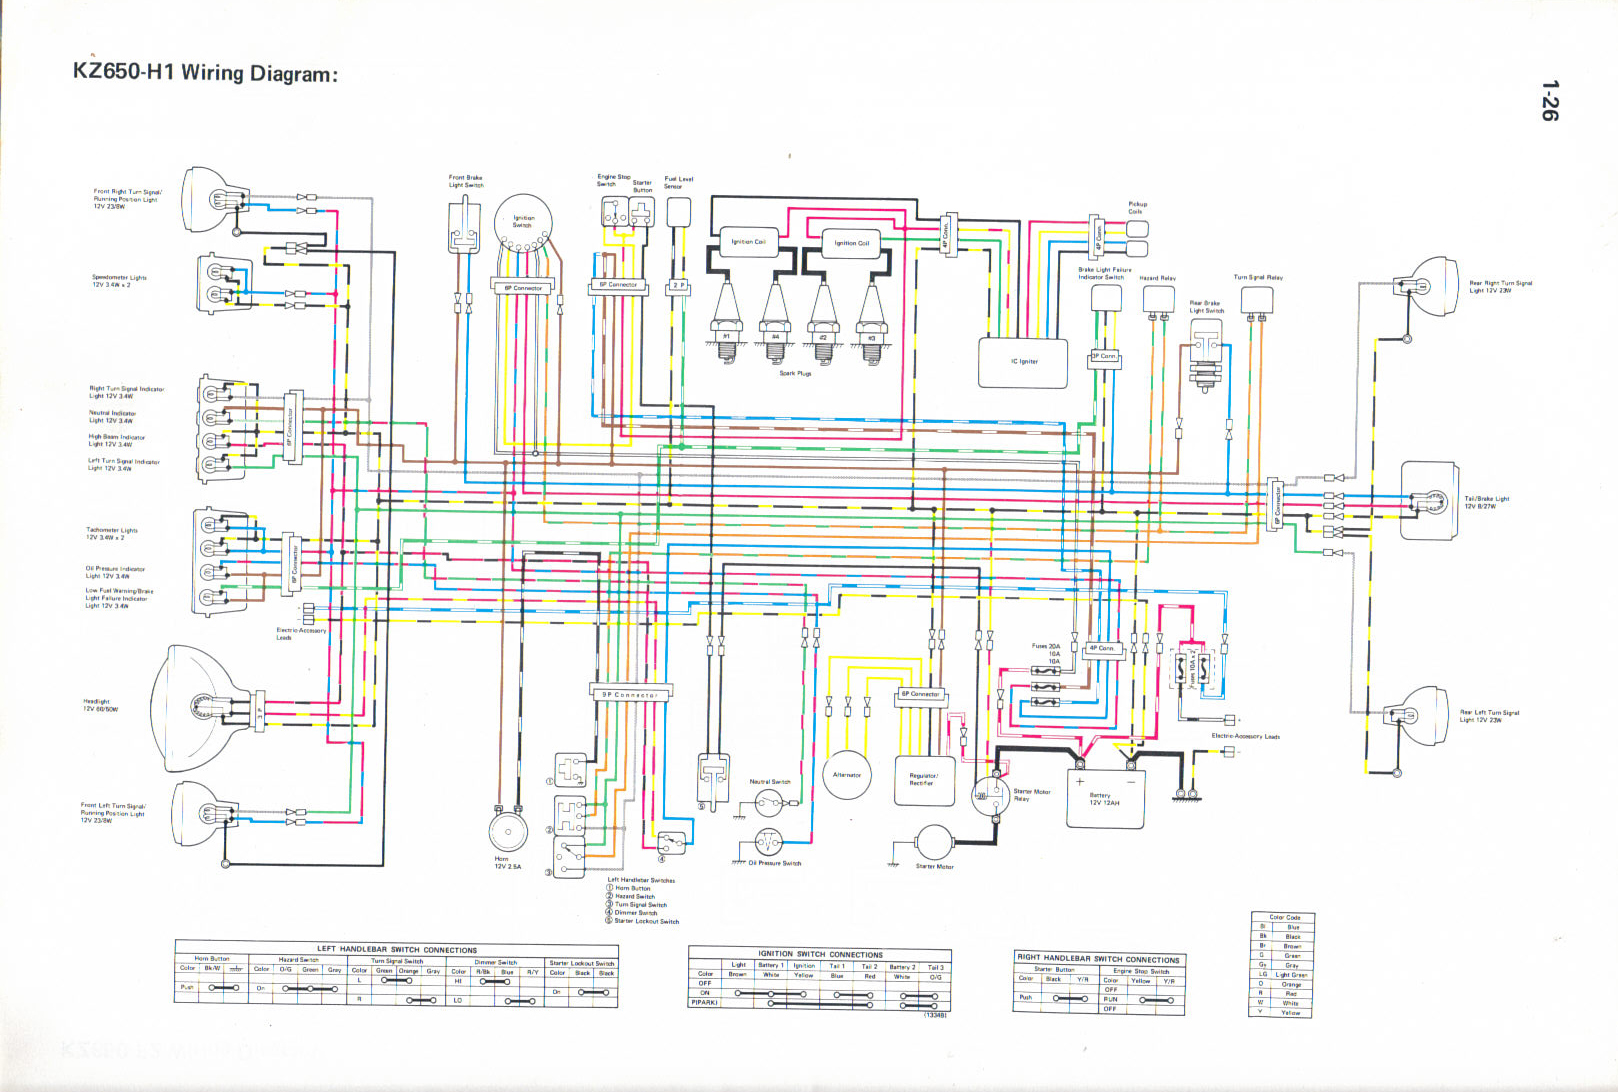 KZ650 H1 kz650 info wiring diagrams Yamaha Wiring Schematic at bayanpartner.co